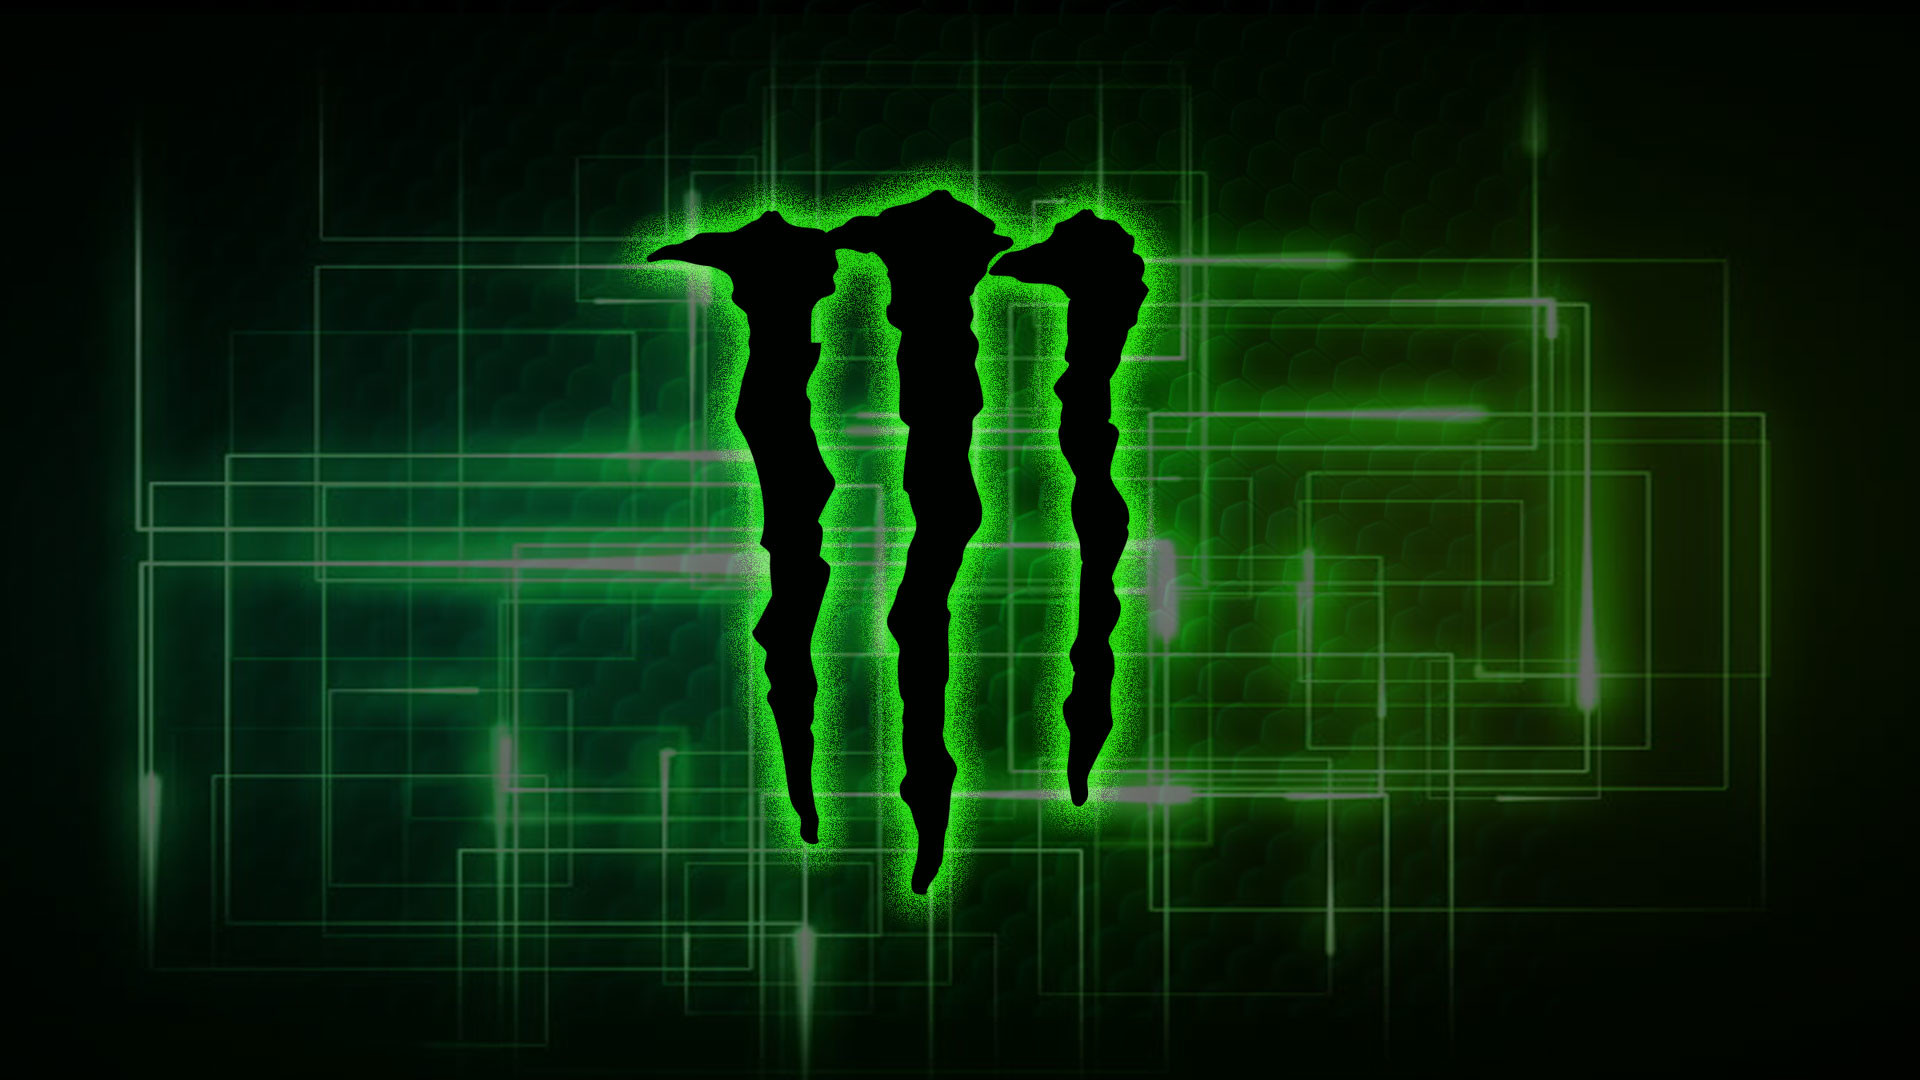 Phone Car Wallpapers Hd Monster Energy Logo Wallpapers 72 Images